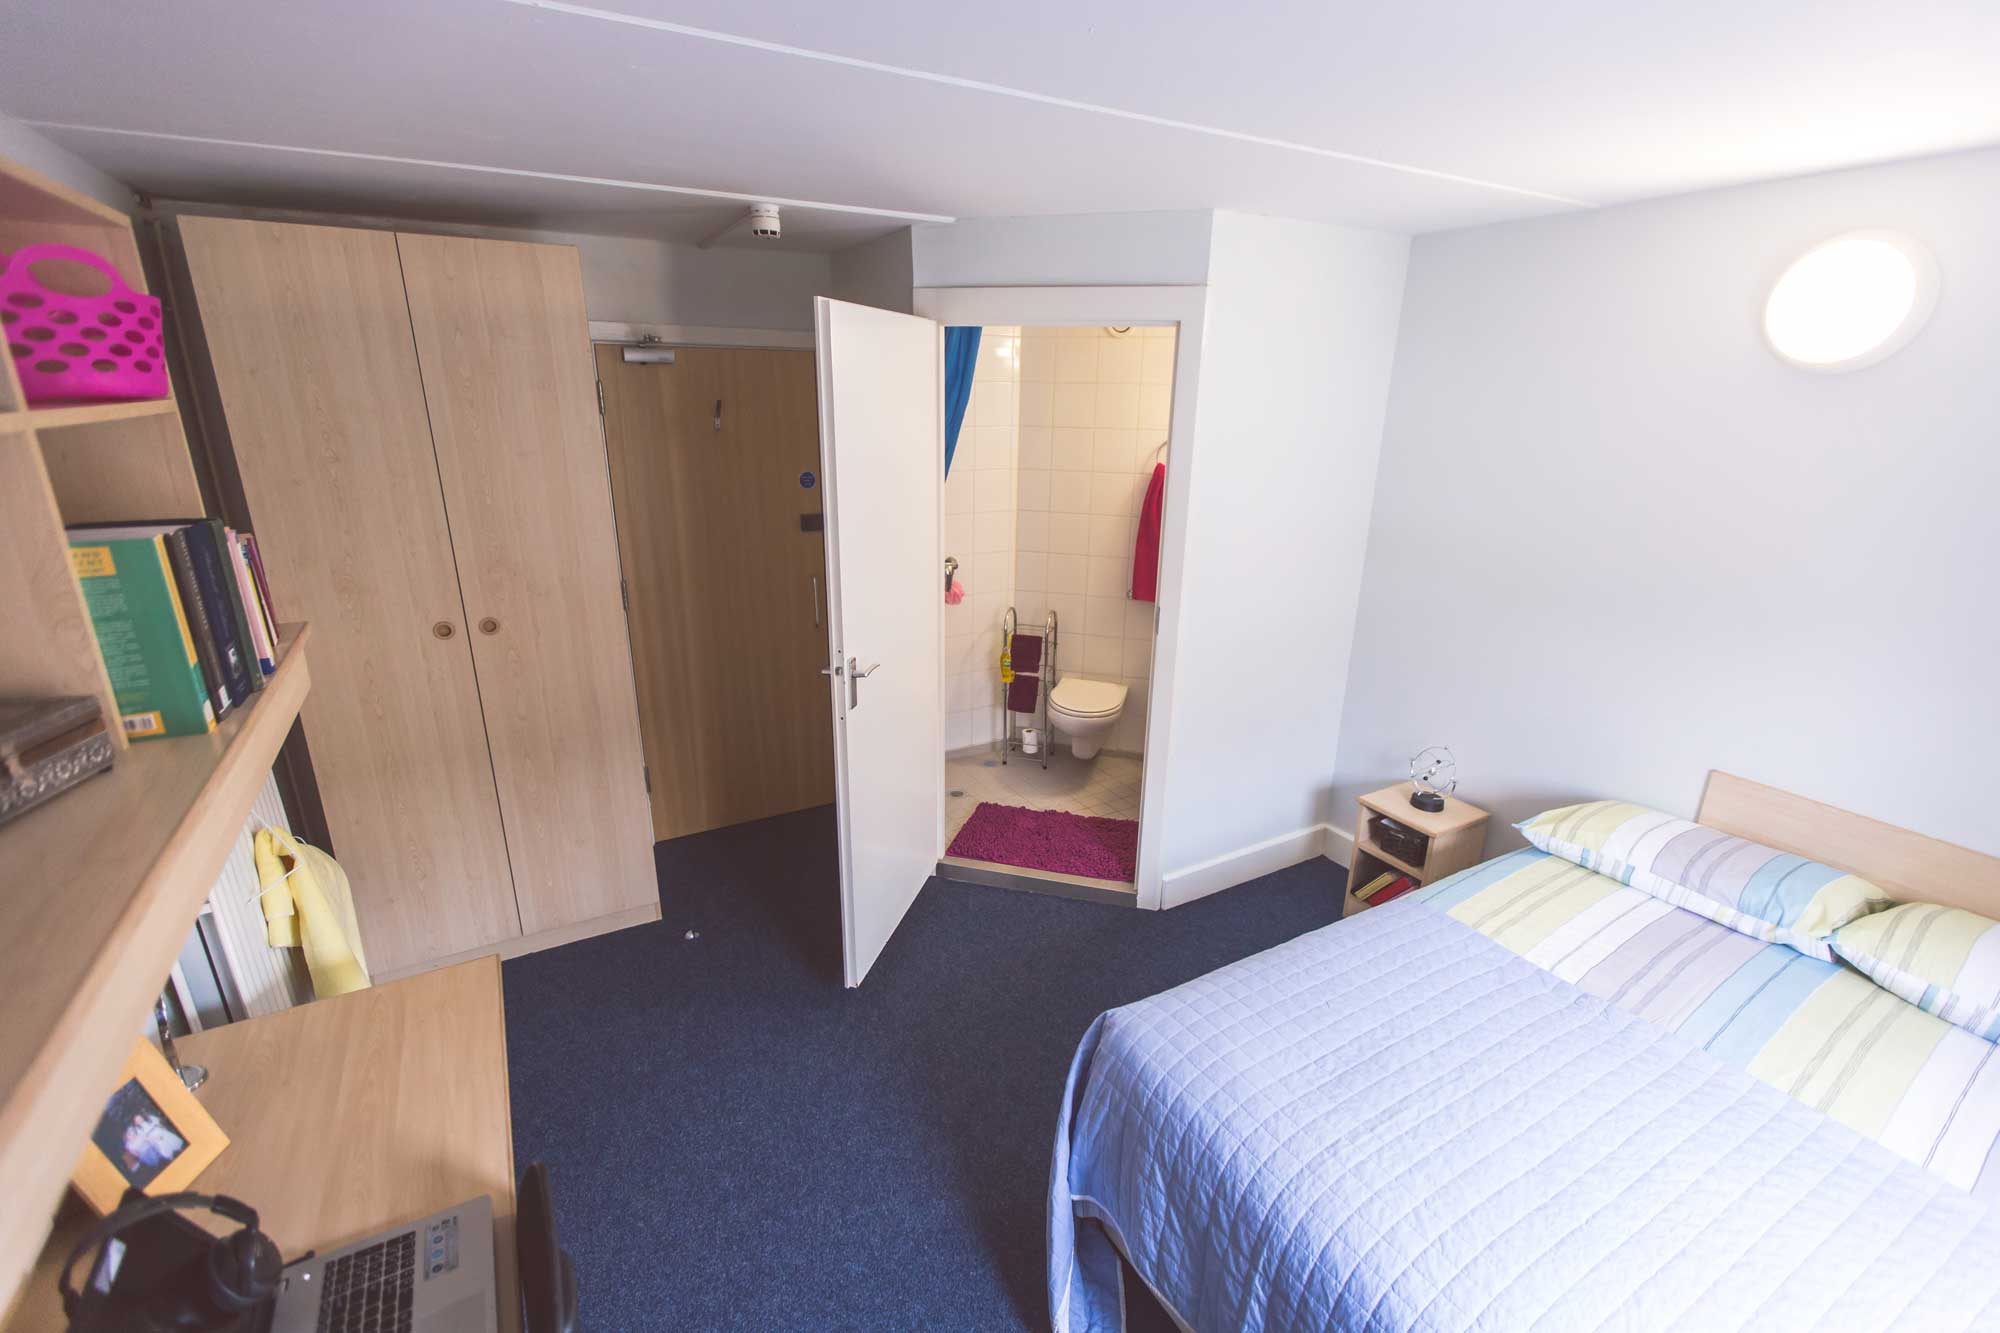 Duncreggan Village Accommodation Ulster University